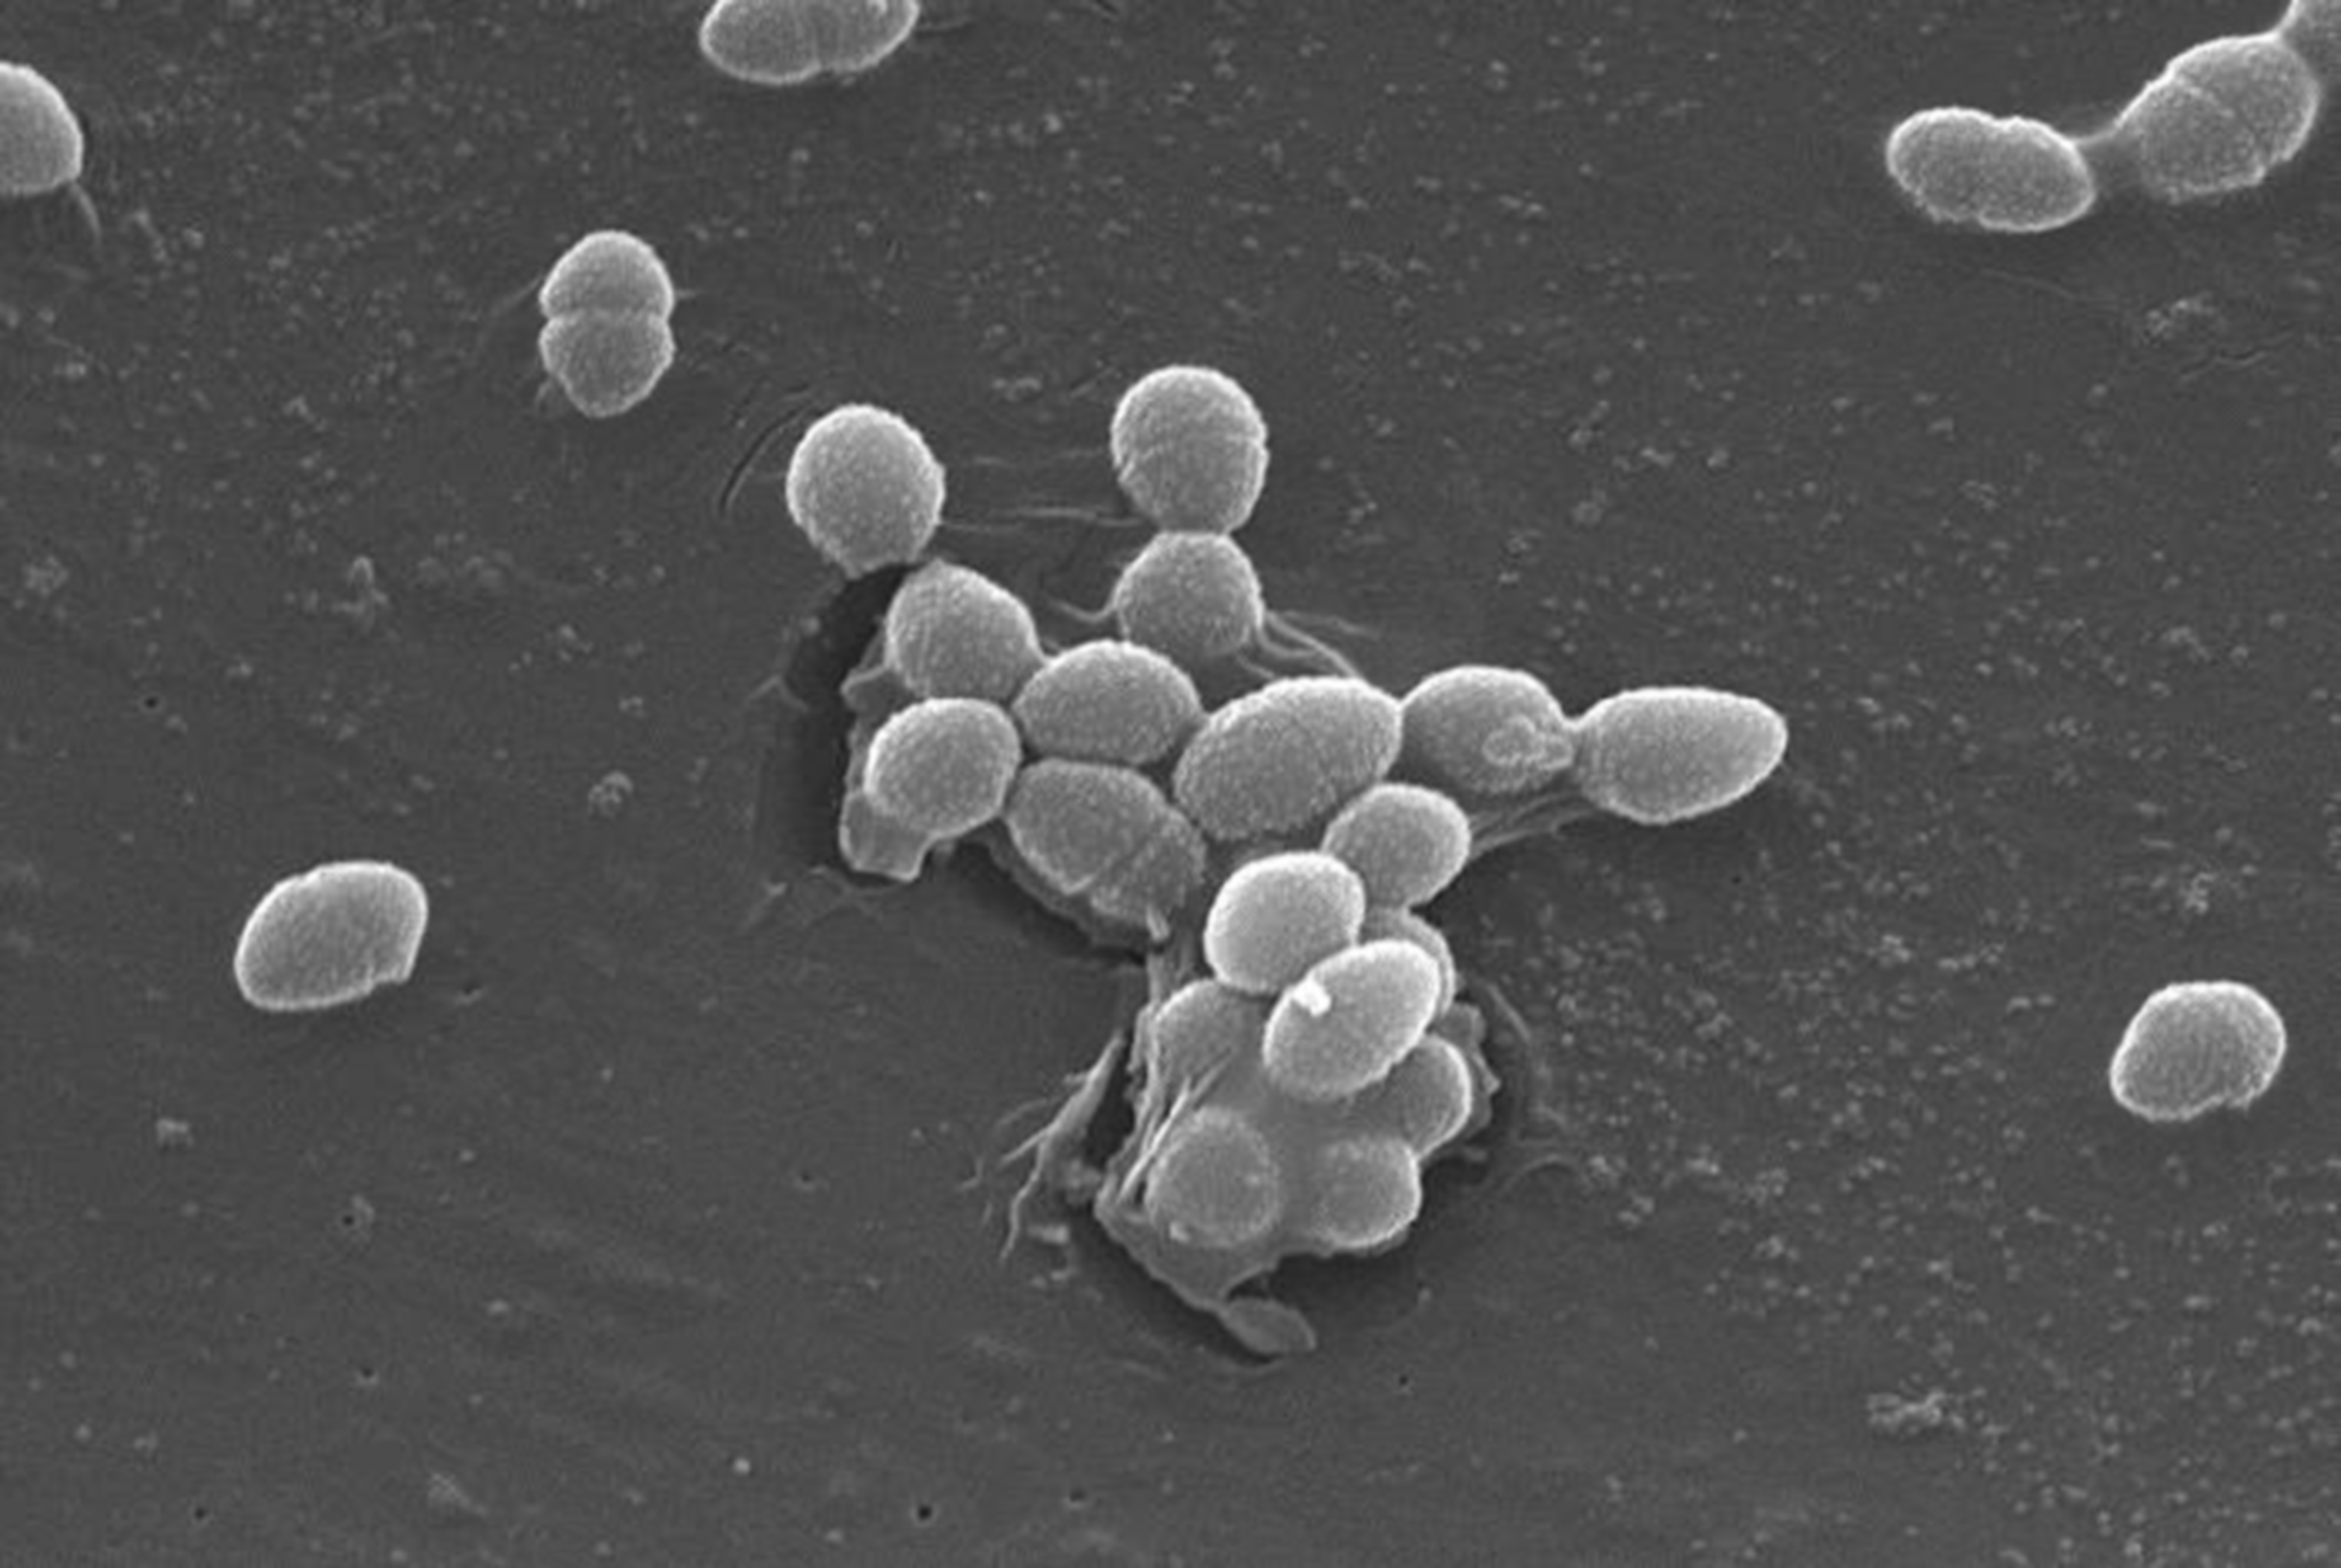 Scanning Electron Micrograph of Enterococcus faecalis, a bacterium that commonly lives in mammalian GI tracts. / Credit: Wikimedia/CDC/Janice Haney Carr